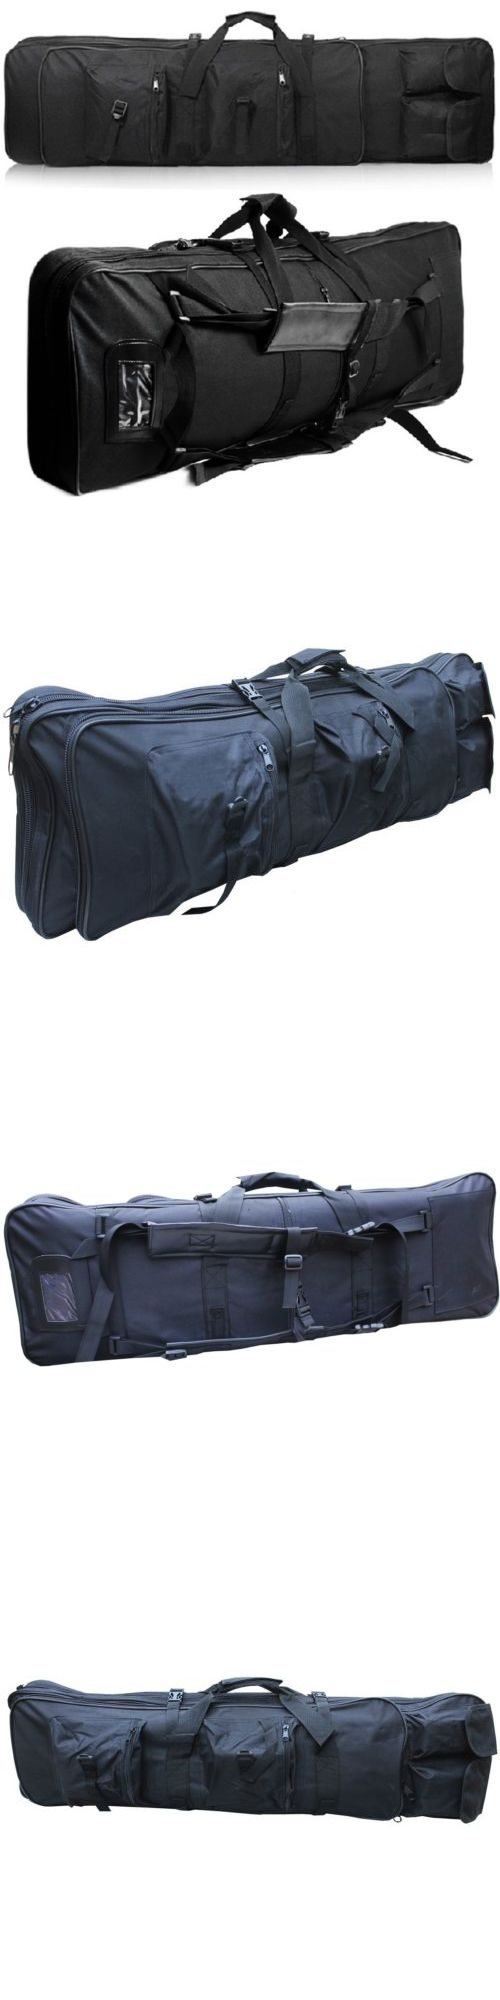 "Other Hunting Accessories 52509: 47"" Long Black 600D Soft Padded Tactical Gun Case Ar Bag Assault Rifle Storage BUY IT NOW ONLY: $30.35"